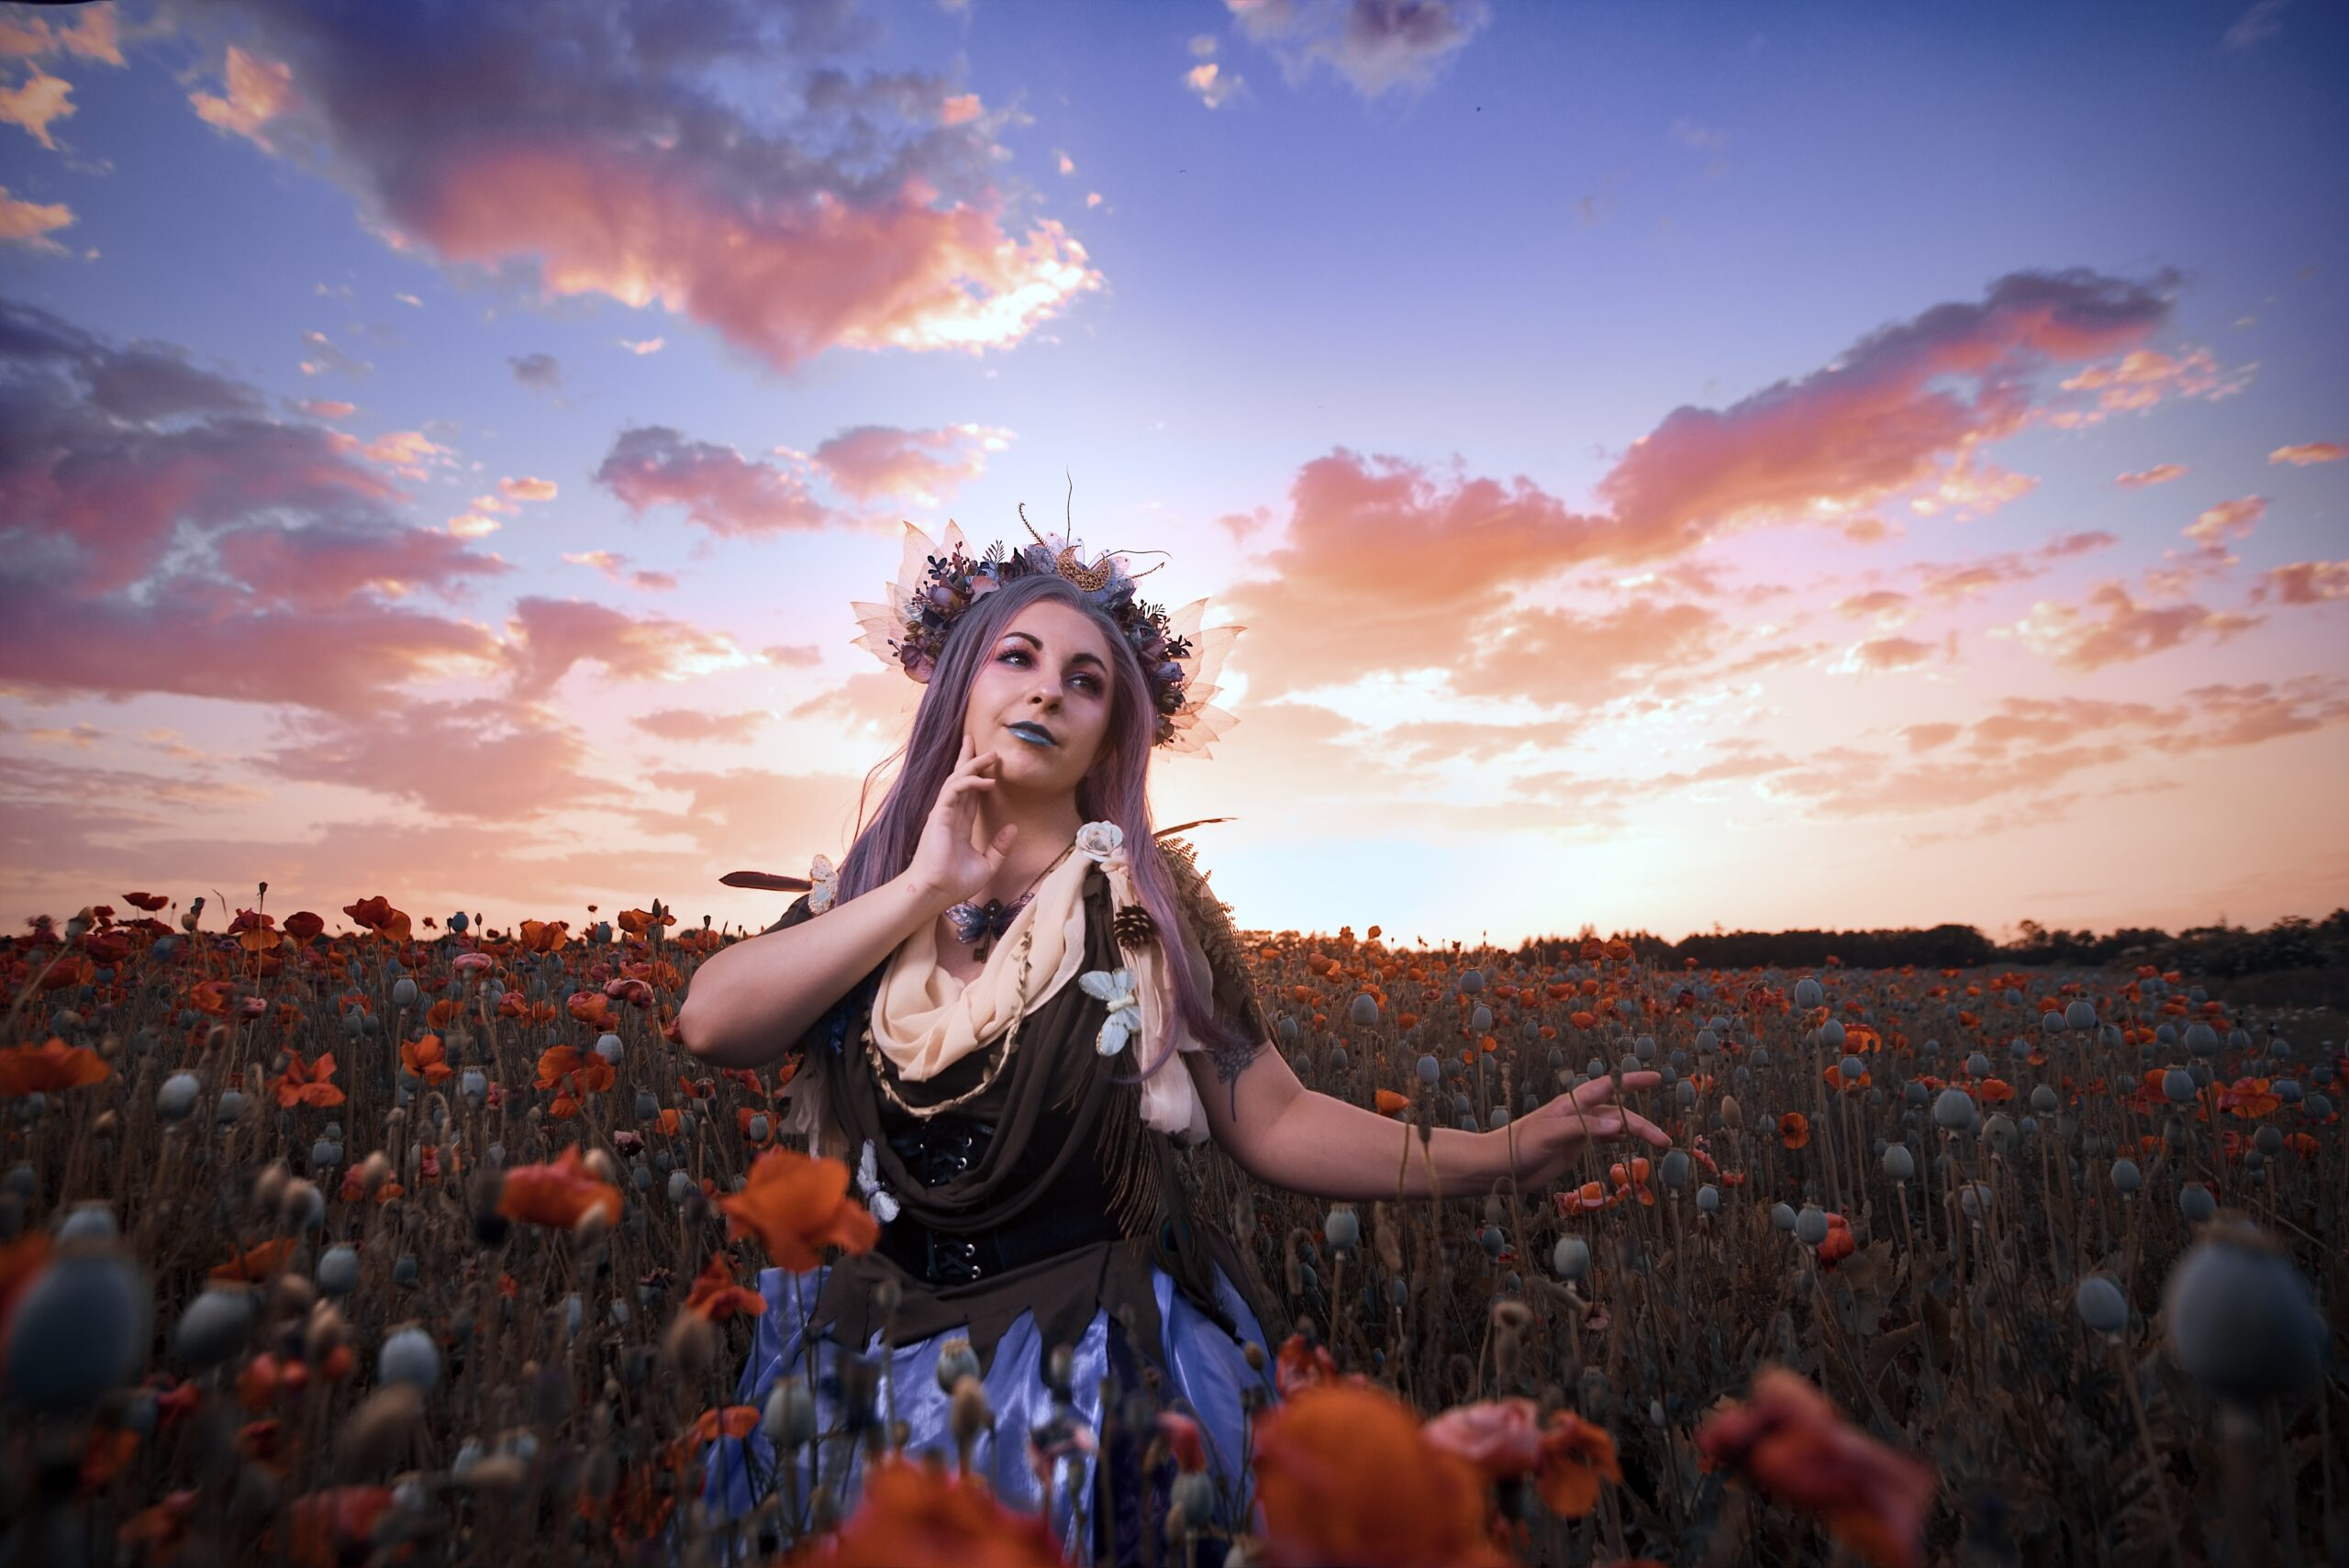 Tips for Taking and Editing Portraits Against a Bright Sky